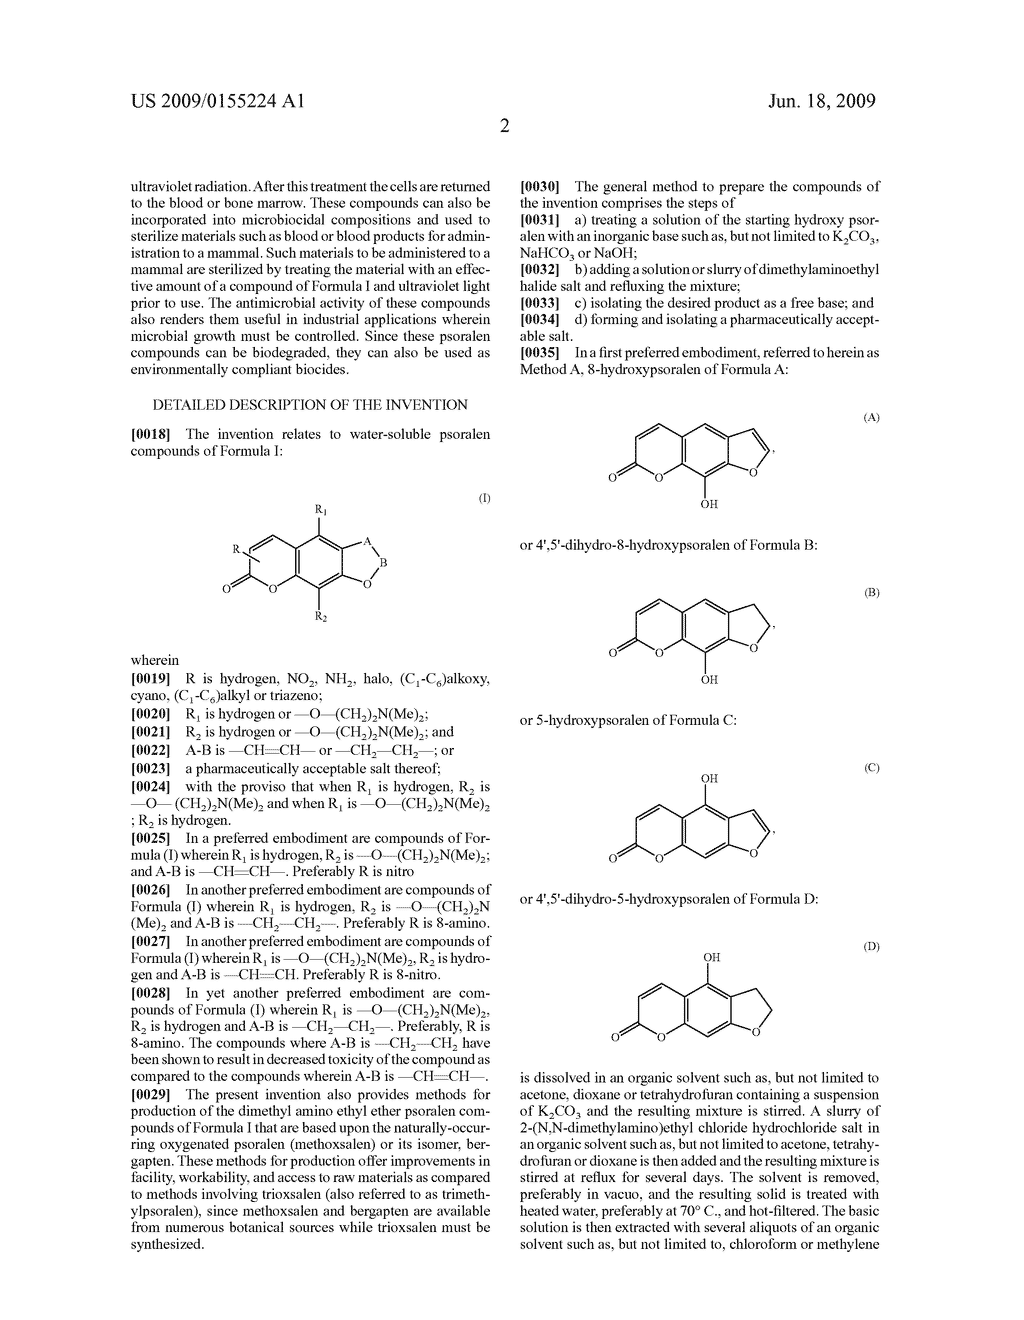 Dimethyl amino ethyl ether psoralens and methods for their production and use - diagram, schematic, and image 03